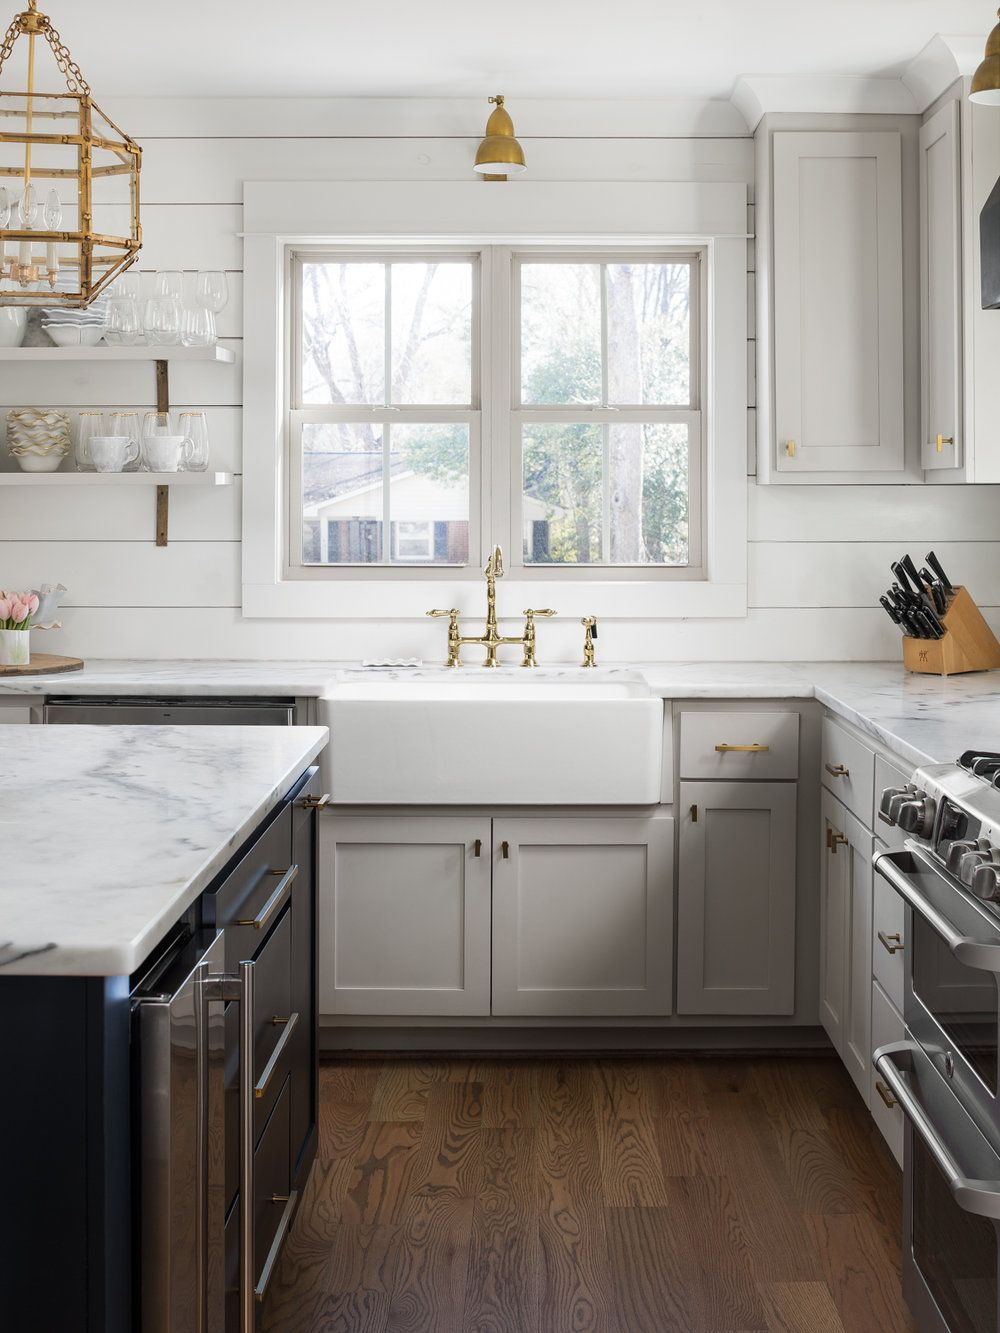 Kitchens Willow Homes Birmingham Homebuilder In 2020 Kitchen Cabinet Colors Benjamin Moore Kitchen Kitchen Remodel